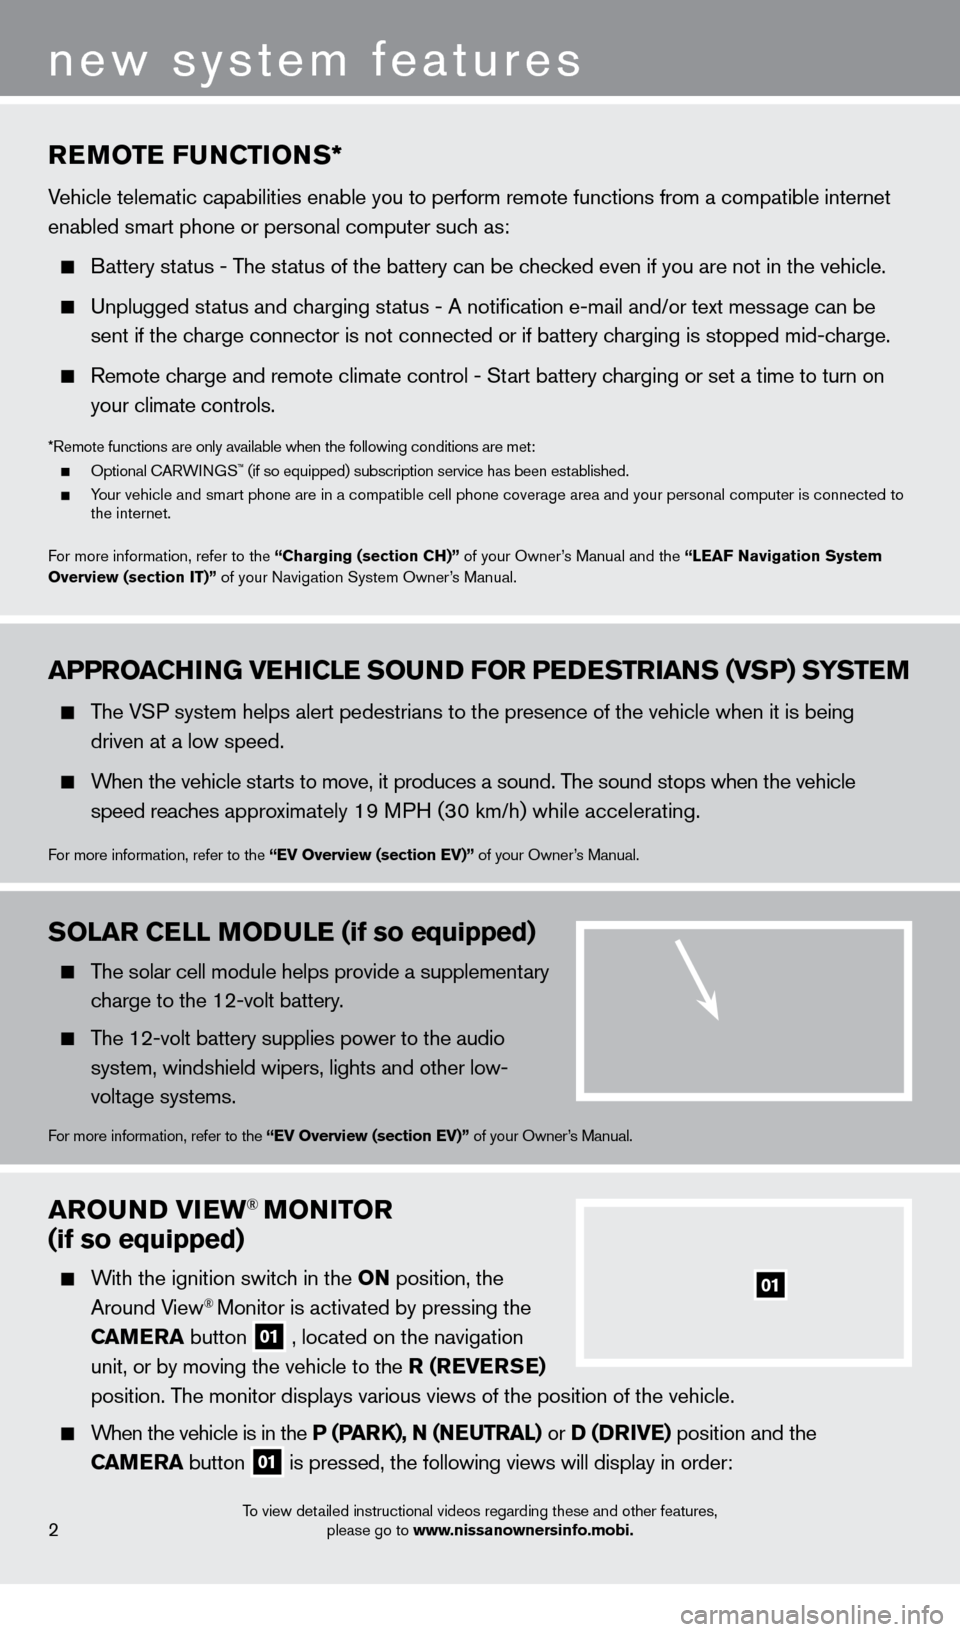 NISSAN LEAF 2013 1.G Quick Reference Guide arOuND VIew® MONITOr   (if so equipped)     With the ignition switch in the ON position, the  Around View® Monitor is activated by pressing the  C a  M e  ra   button   01 , located on the navigatio